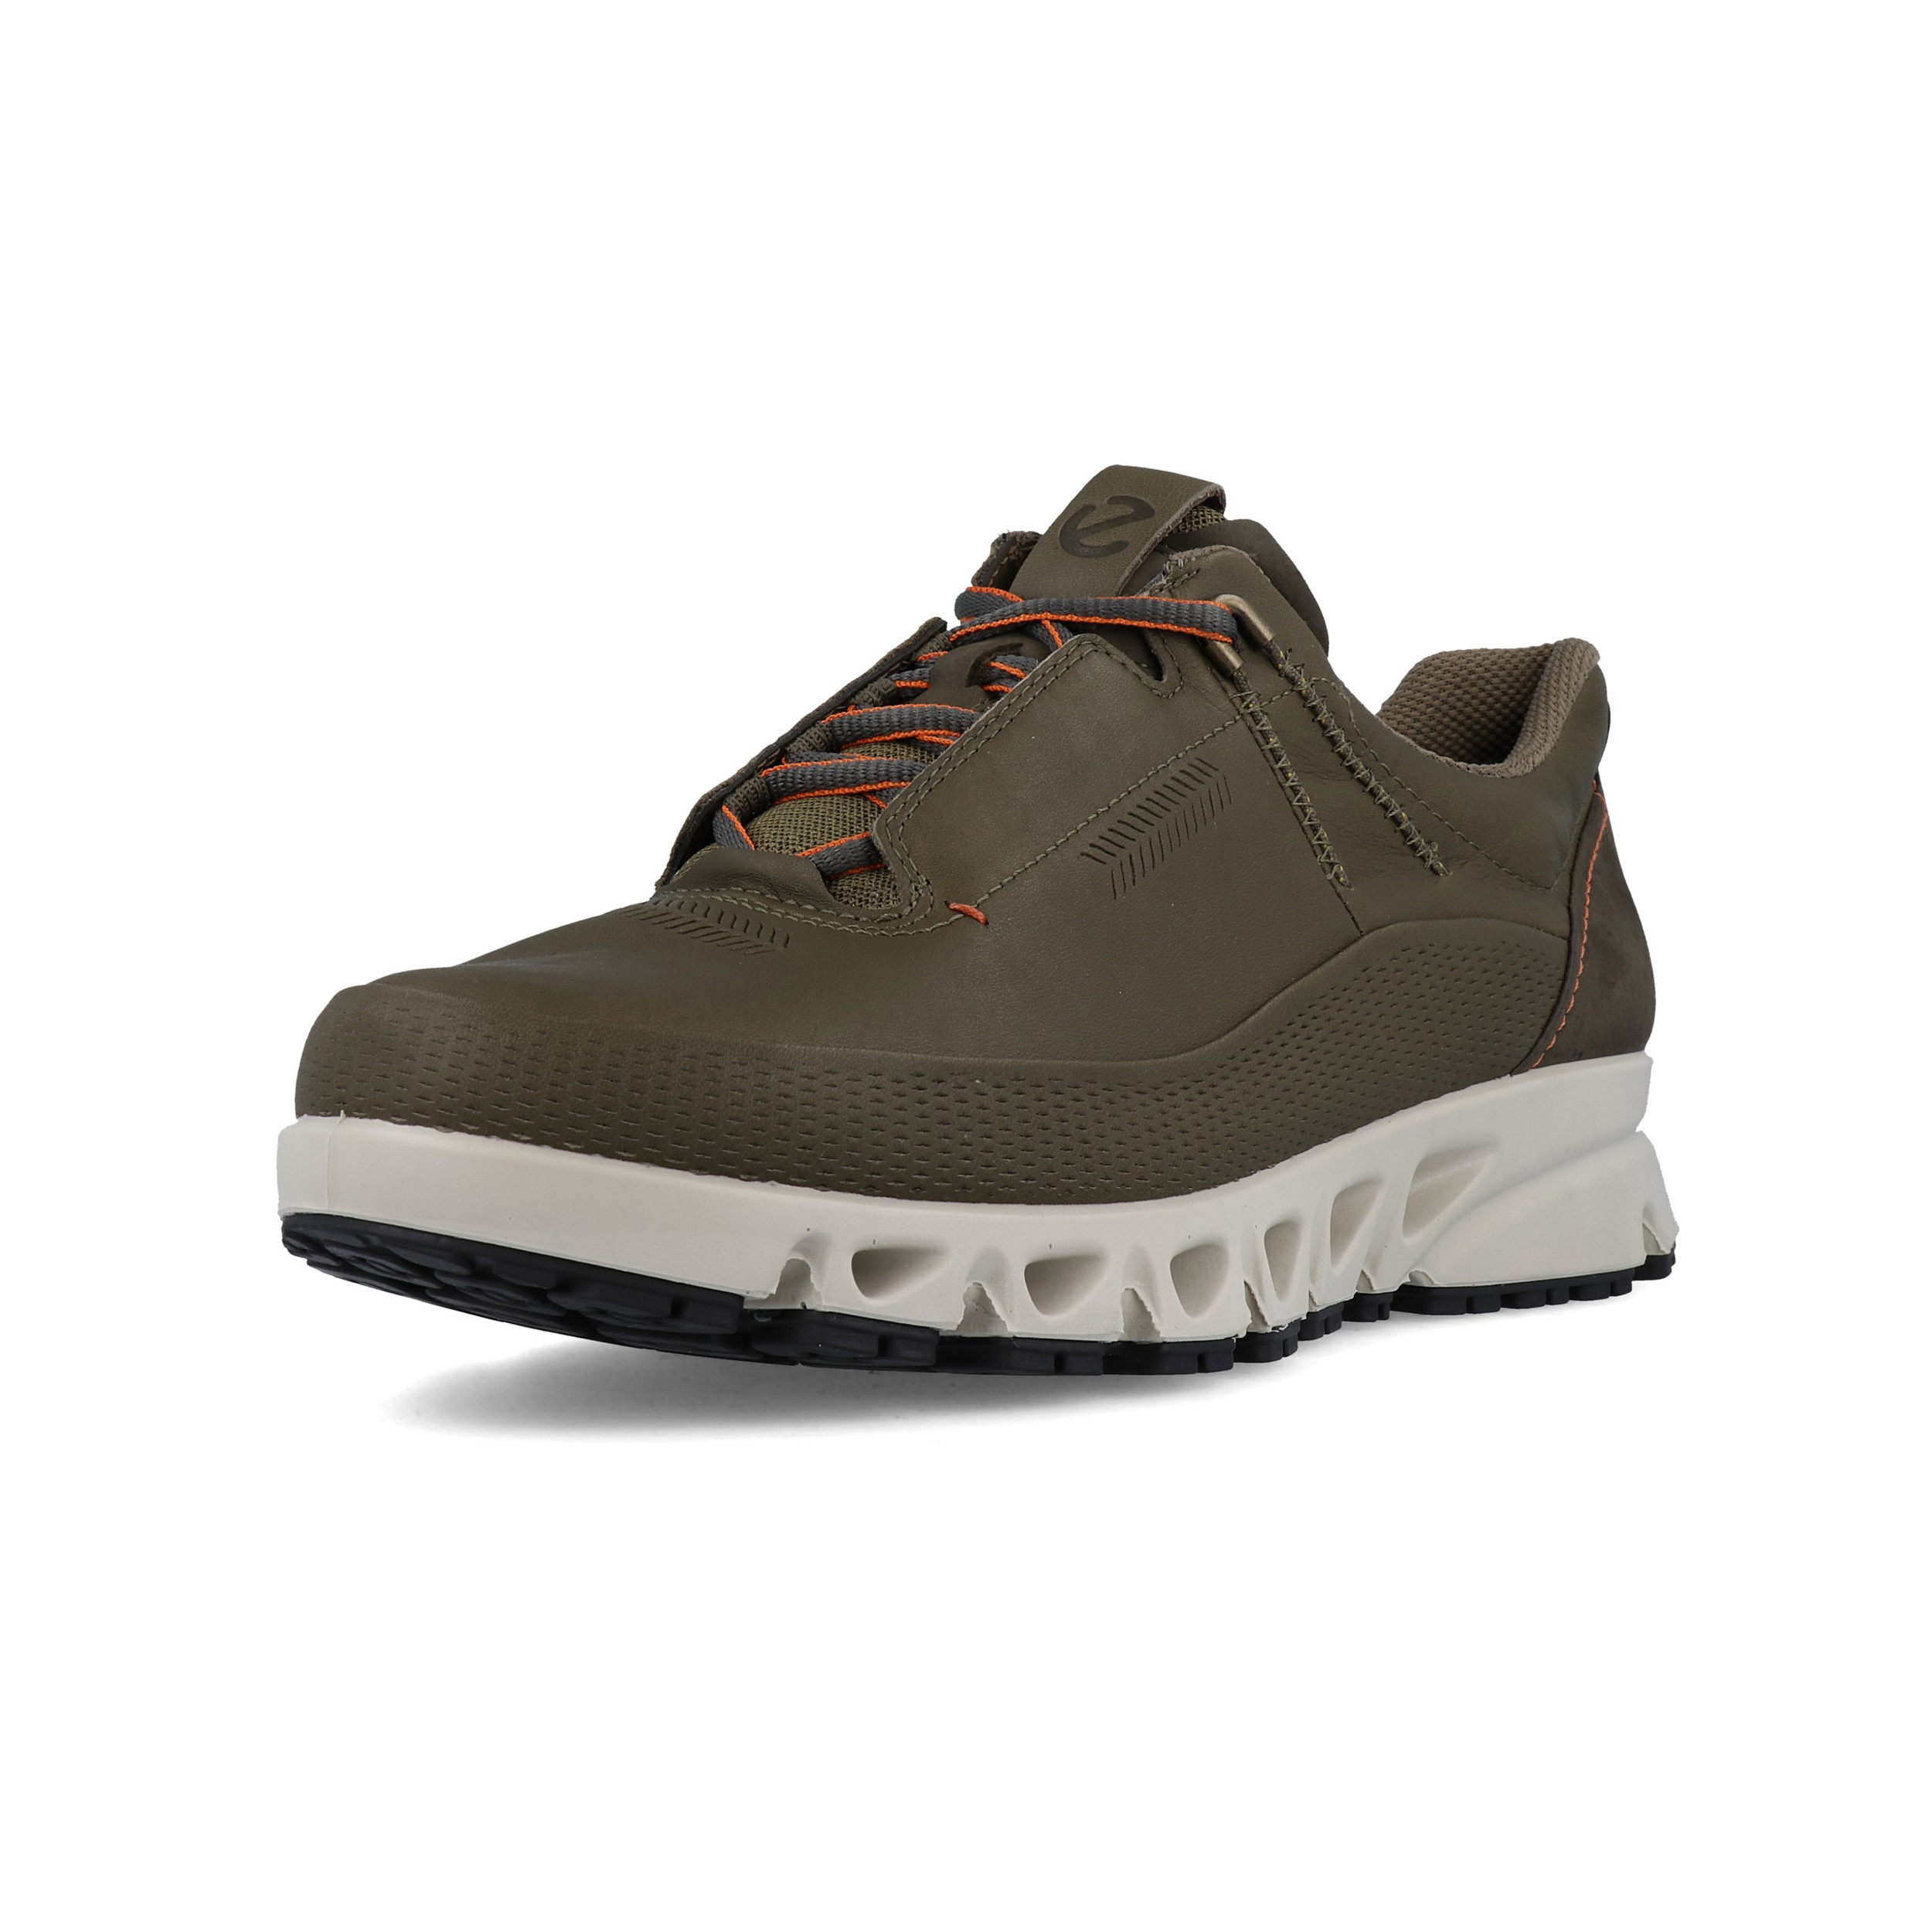 Details about Ecco Mens Omni Vent Walking Shoes Green Sports Outdoors Waterproof Breathable